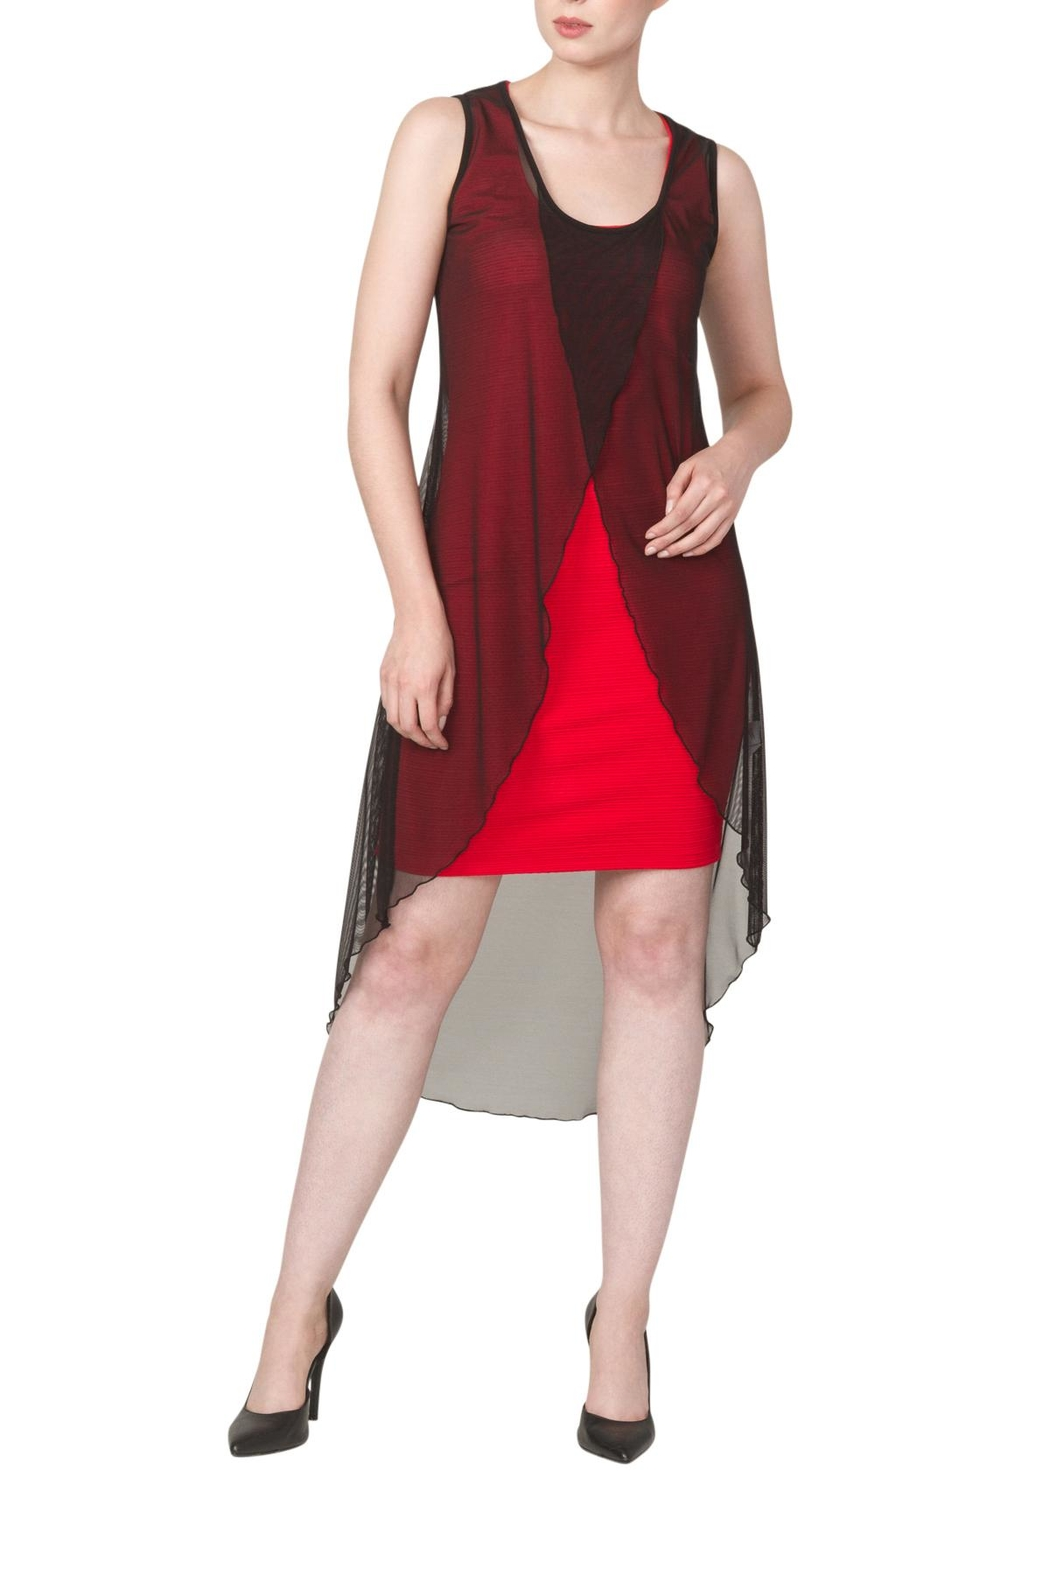 Yvonne Marie Red Nelly Dress - Front Cropped Image